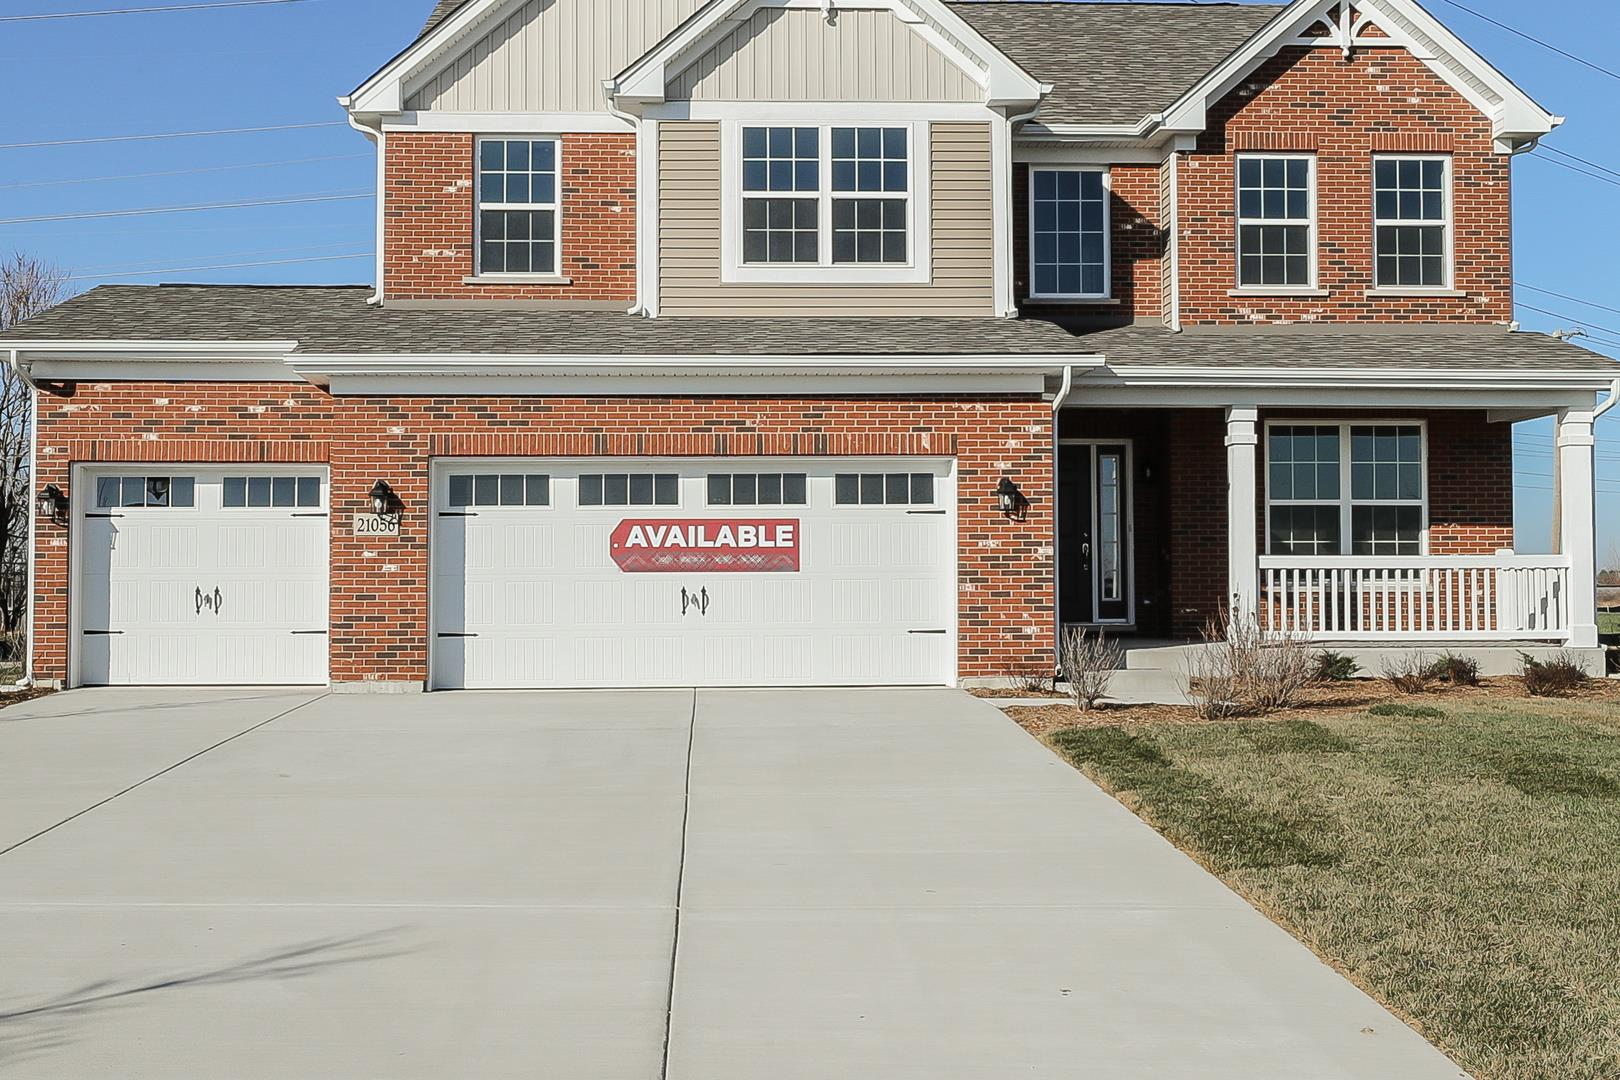 21056 Coventry Lot #36 Circle, Shorewood, IL 60404 - #: 10828811